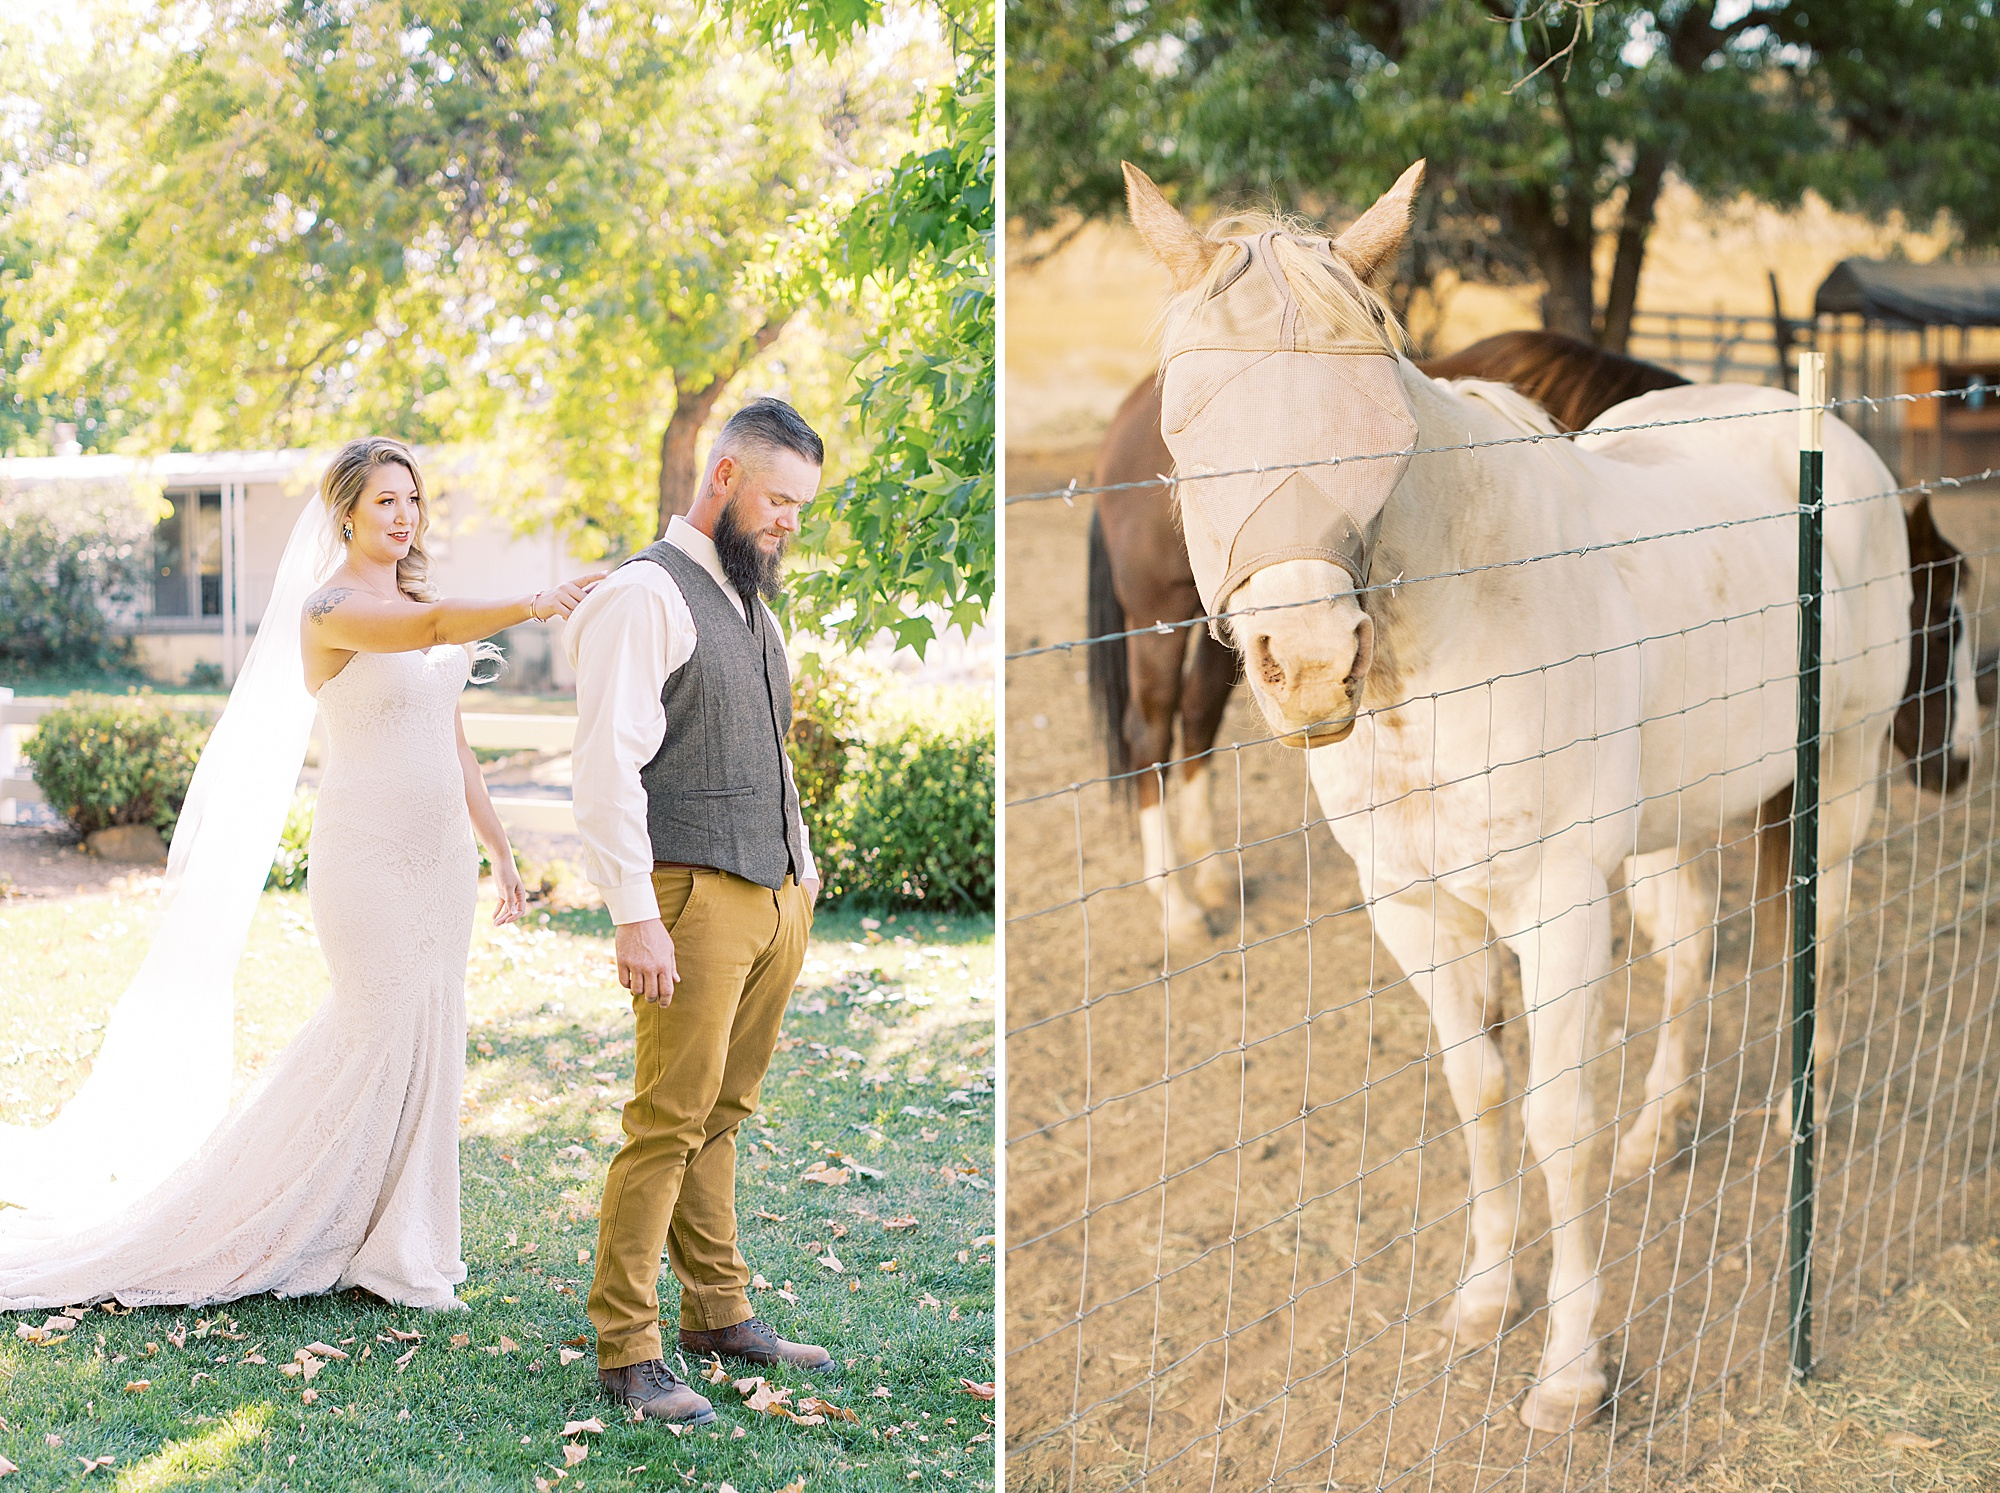 Sonora Wedding Photographer - Tiffany and Jesse - Ashley Baumgartner - Private Estate Summer Wedding_0080.jpg